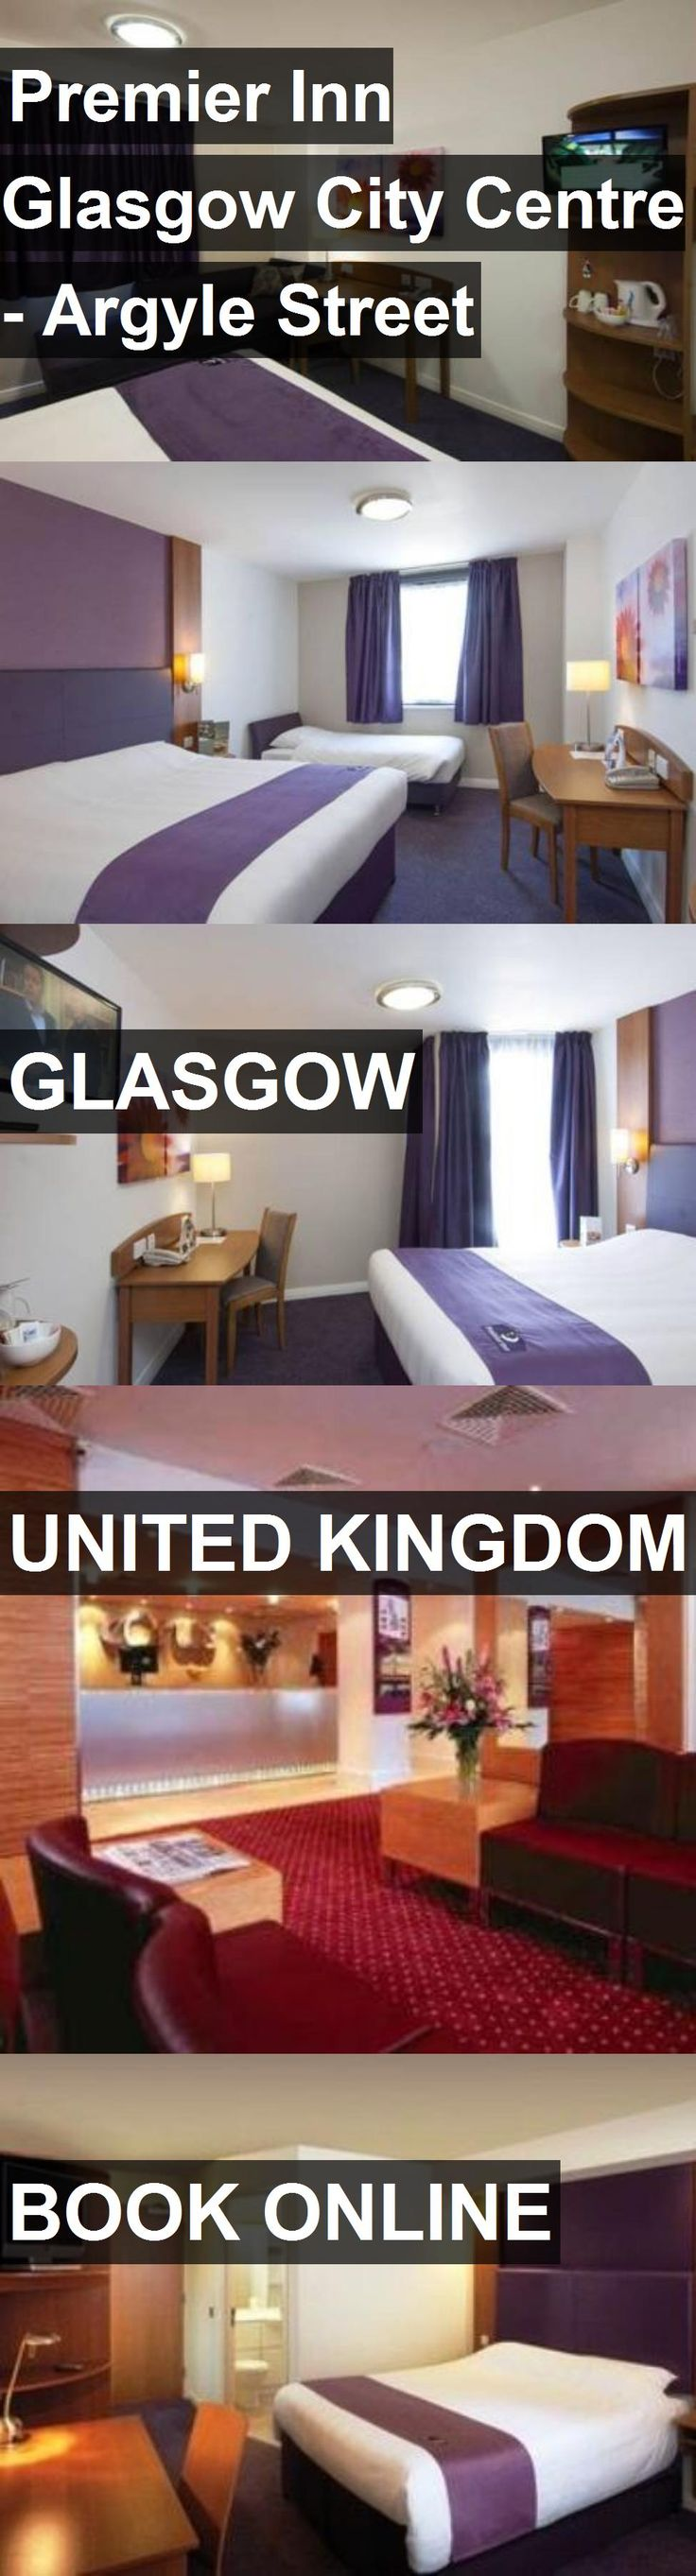 Hotel Premier Inn Glasgow City Centre - Argyle Street in Glasgow, United Kingdom. For more information, photos, reviews and best prices please follow the link. #UnitedKingdom #Glasgow #travel #vacation #hotel